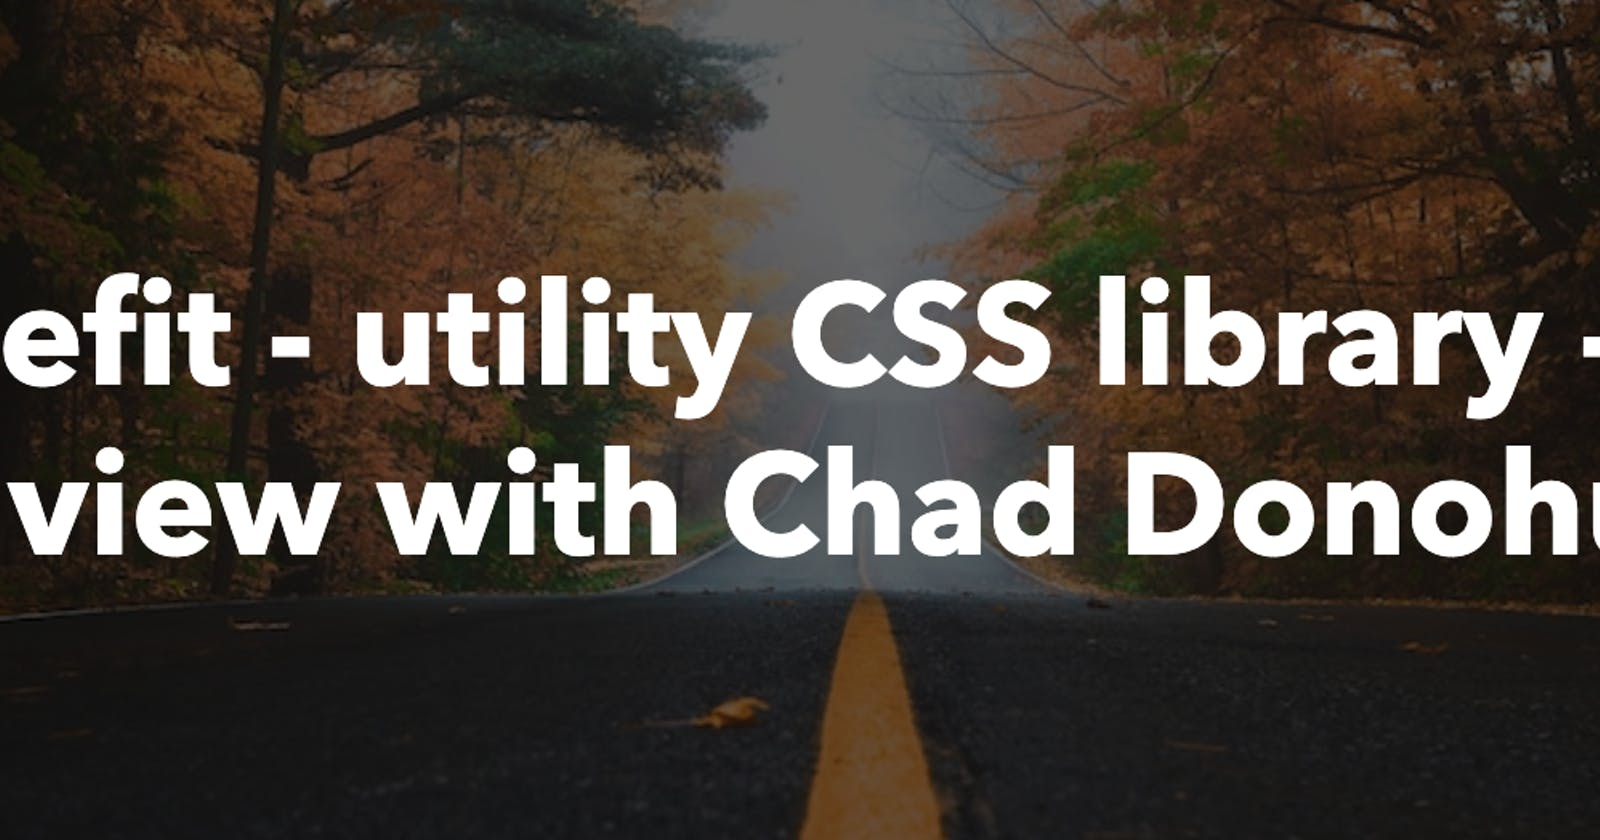 Benefit - utility CSS library - Interview with Chad Donohue